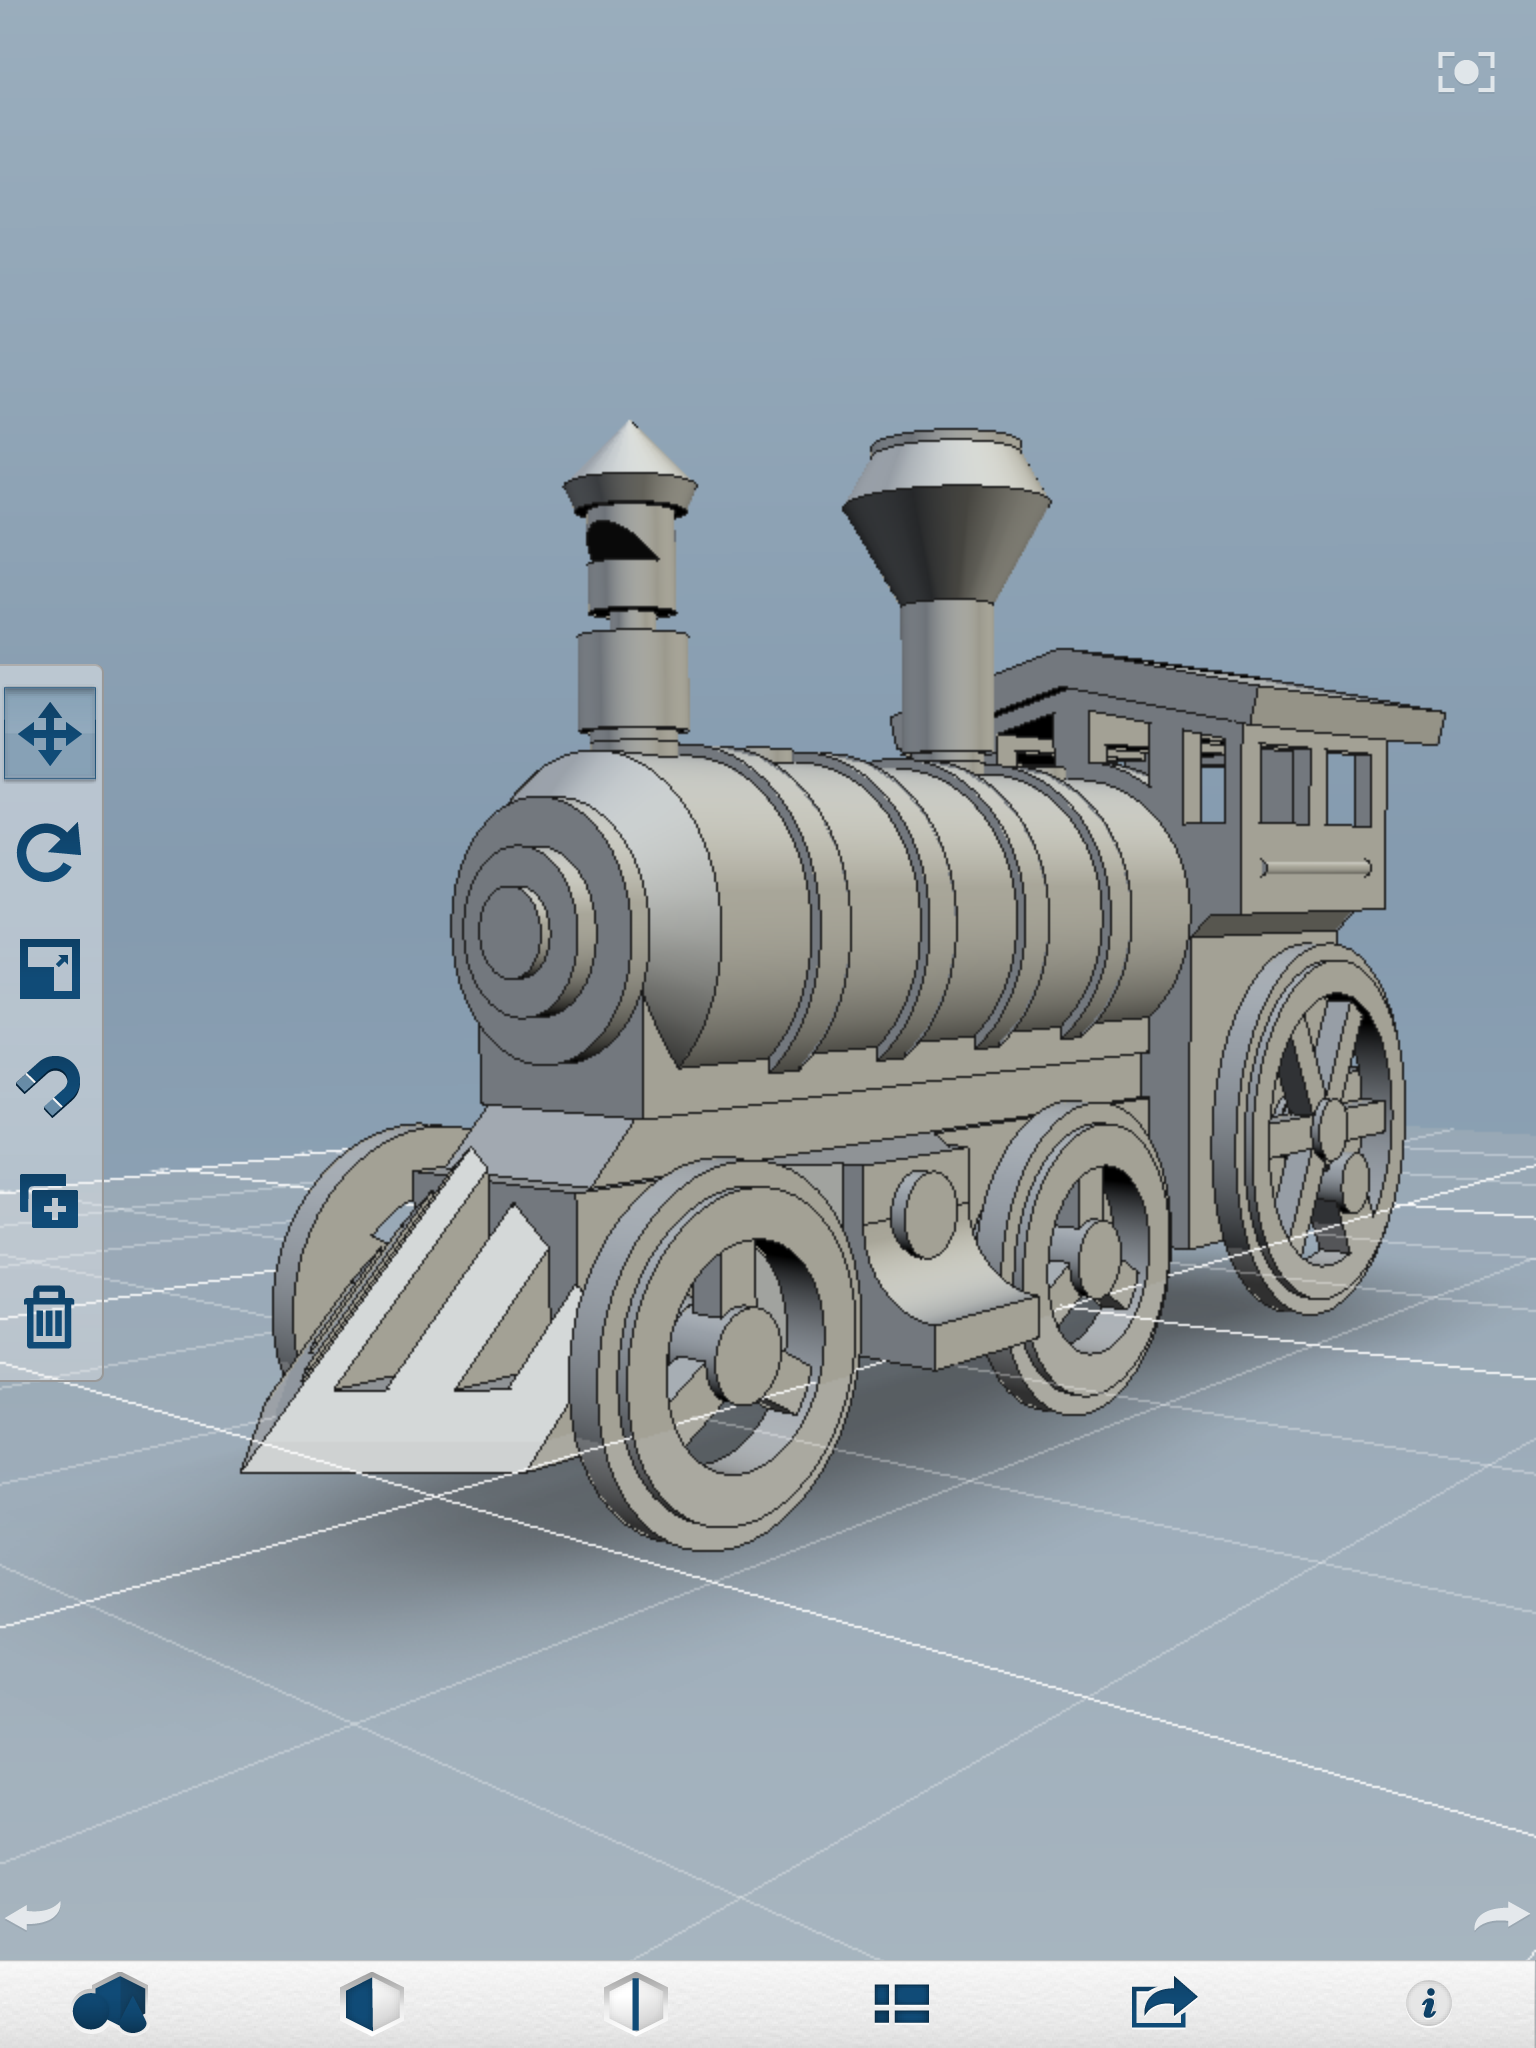 Autodesk 39 s 123d design turns everyone into 3d designers 3d modeling app